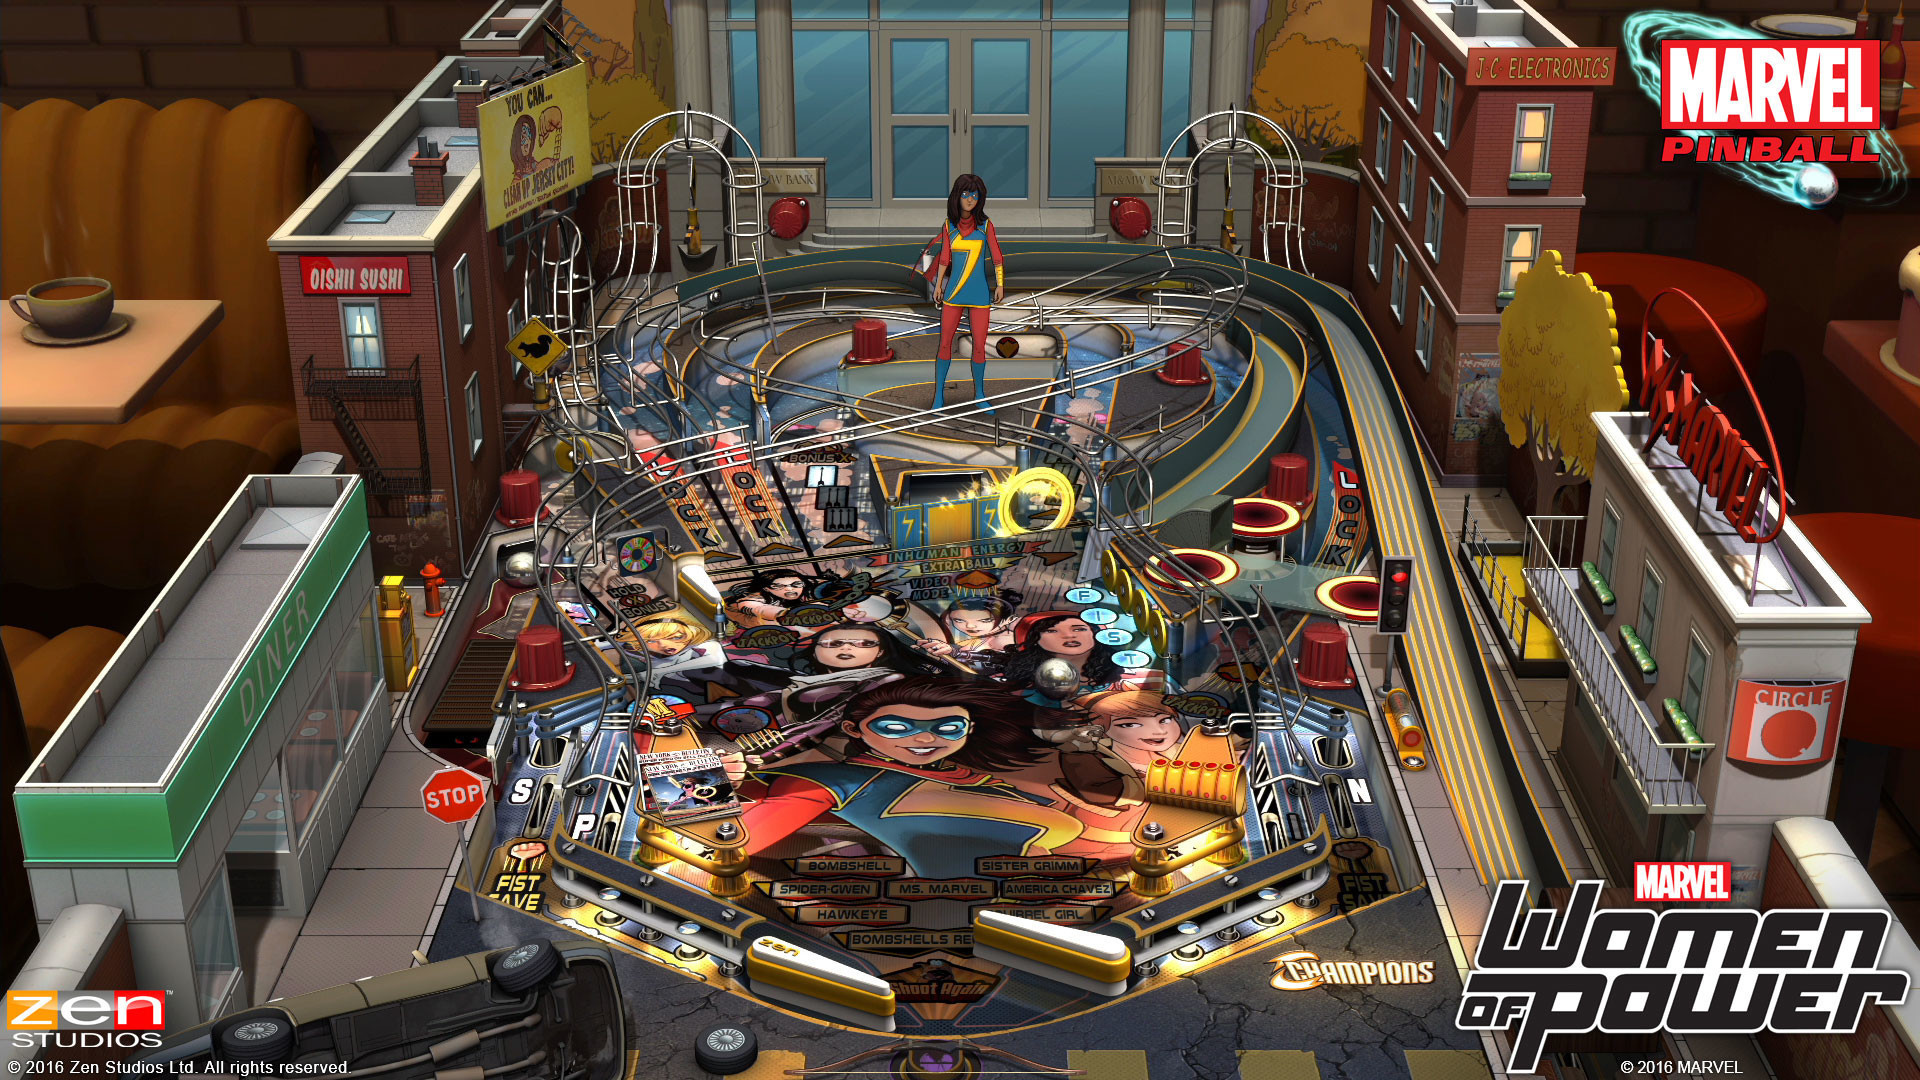 Personal activation code pinball fx3 | Trying to launch tables